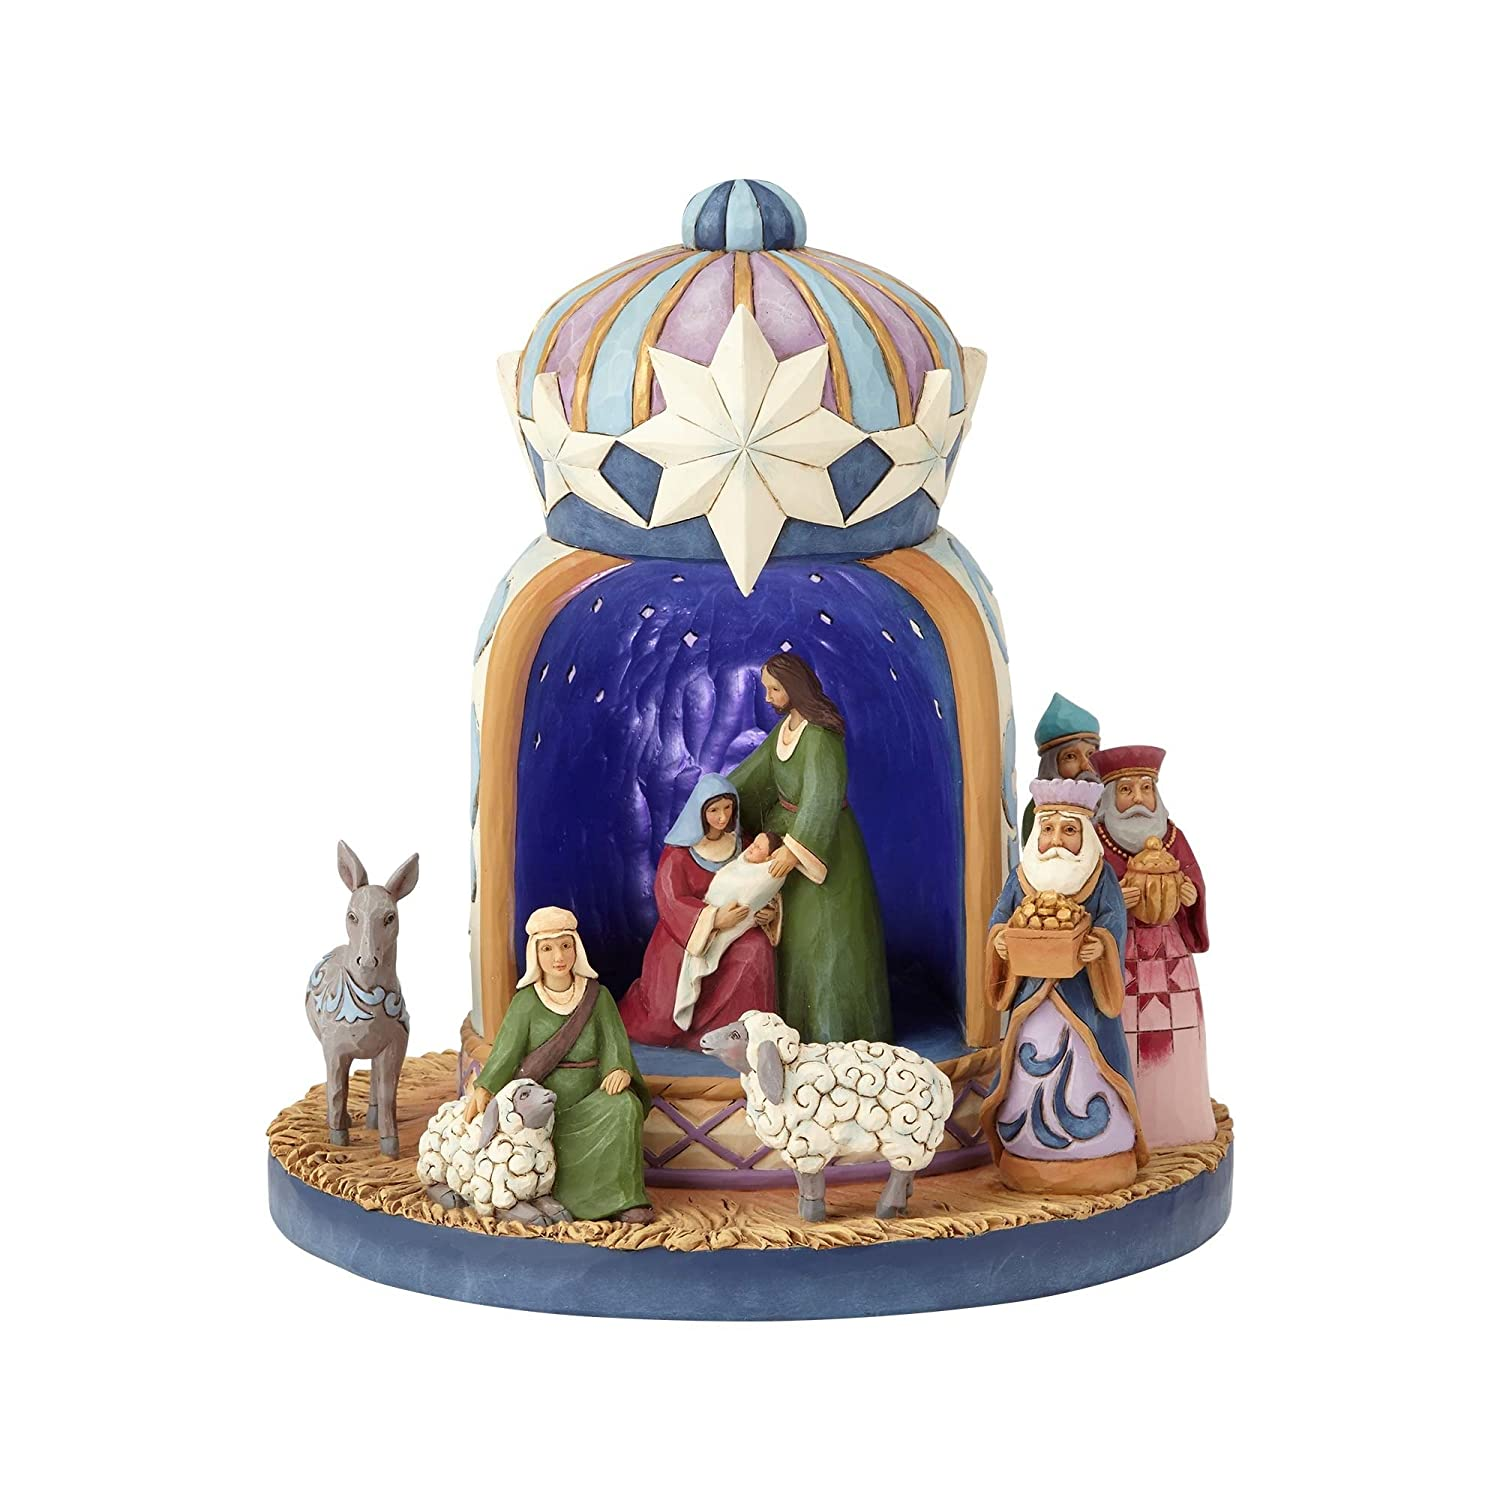 Enesco Jim Shore Heartwood Creek Lighted Nativity Crown, 8 Figurine